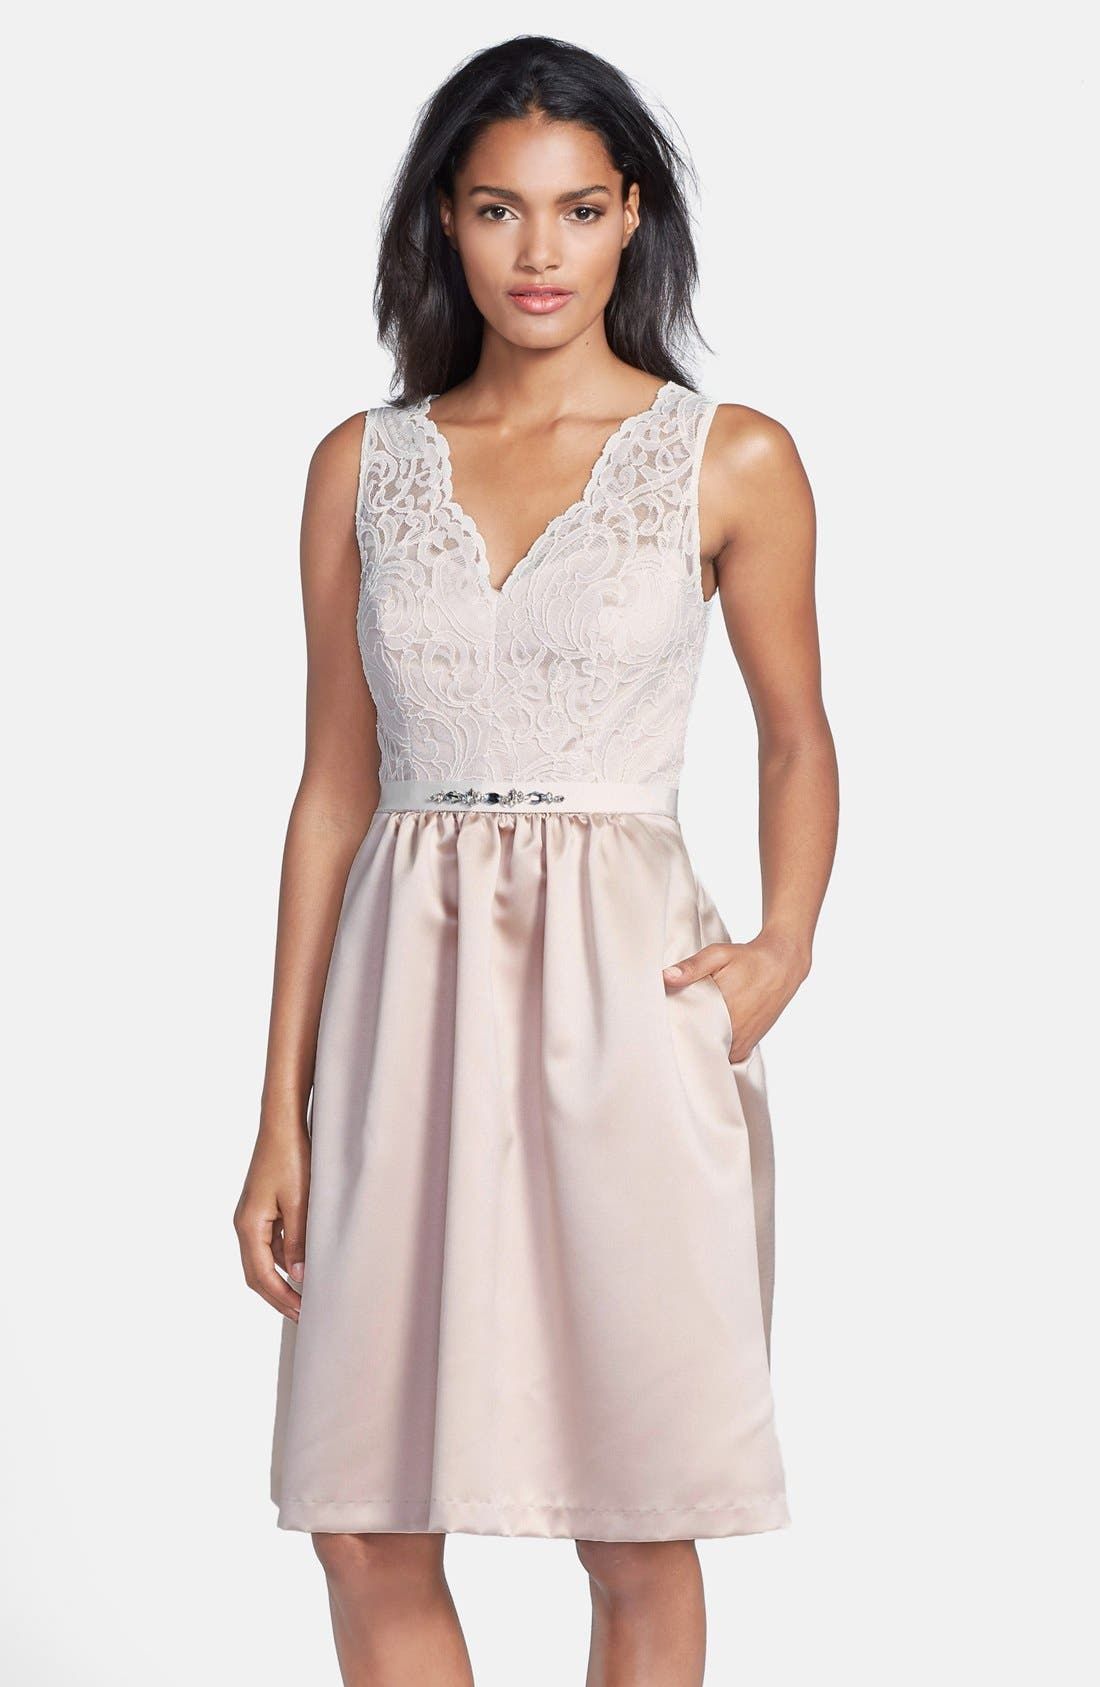 Embellished Lace with Satin Fit & Flare Dress,                             Main thumbnail 1, color,                             101